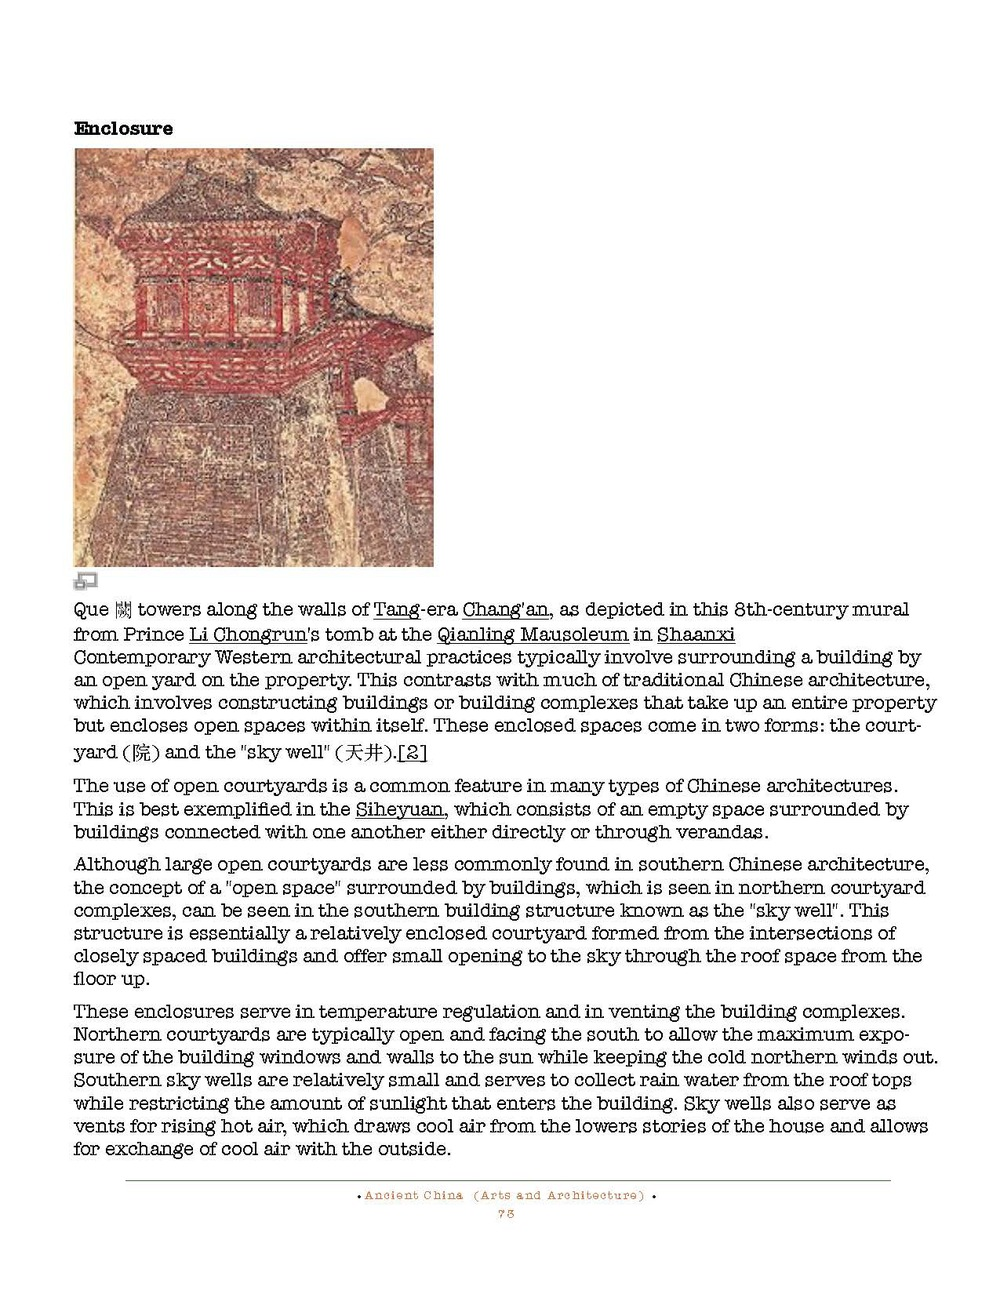 HOCE- Ancient China Notes_Page_073.jpg